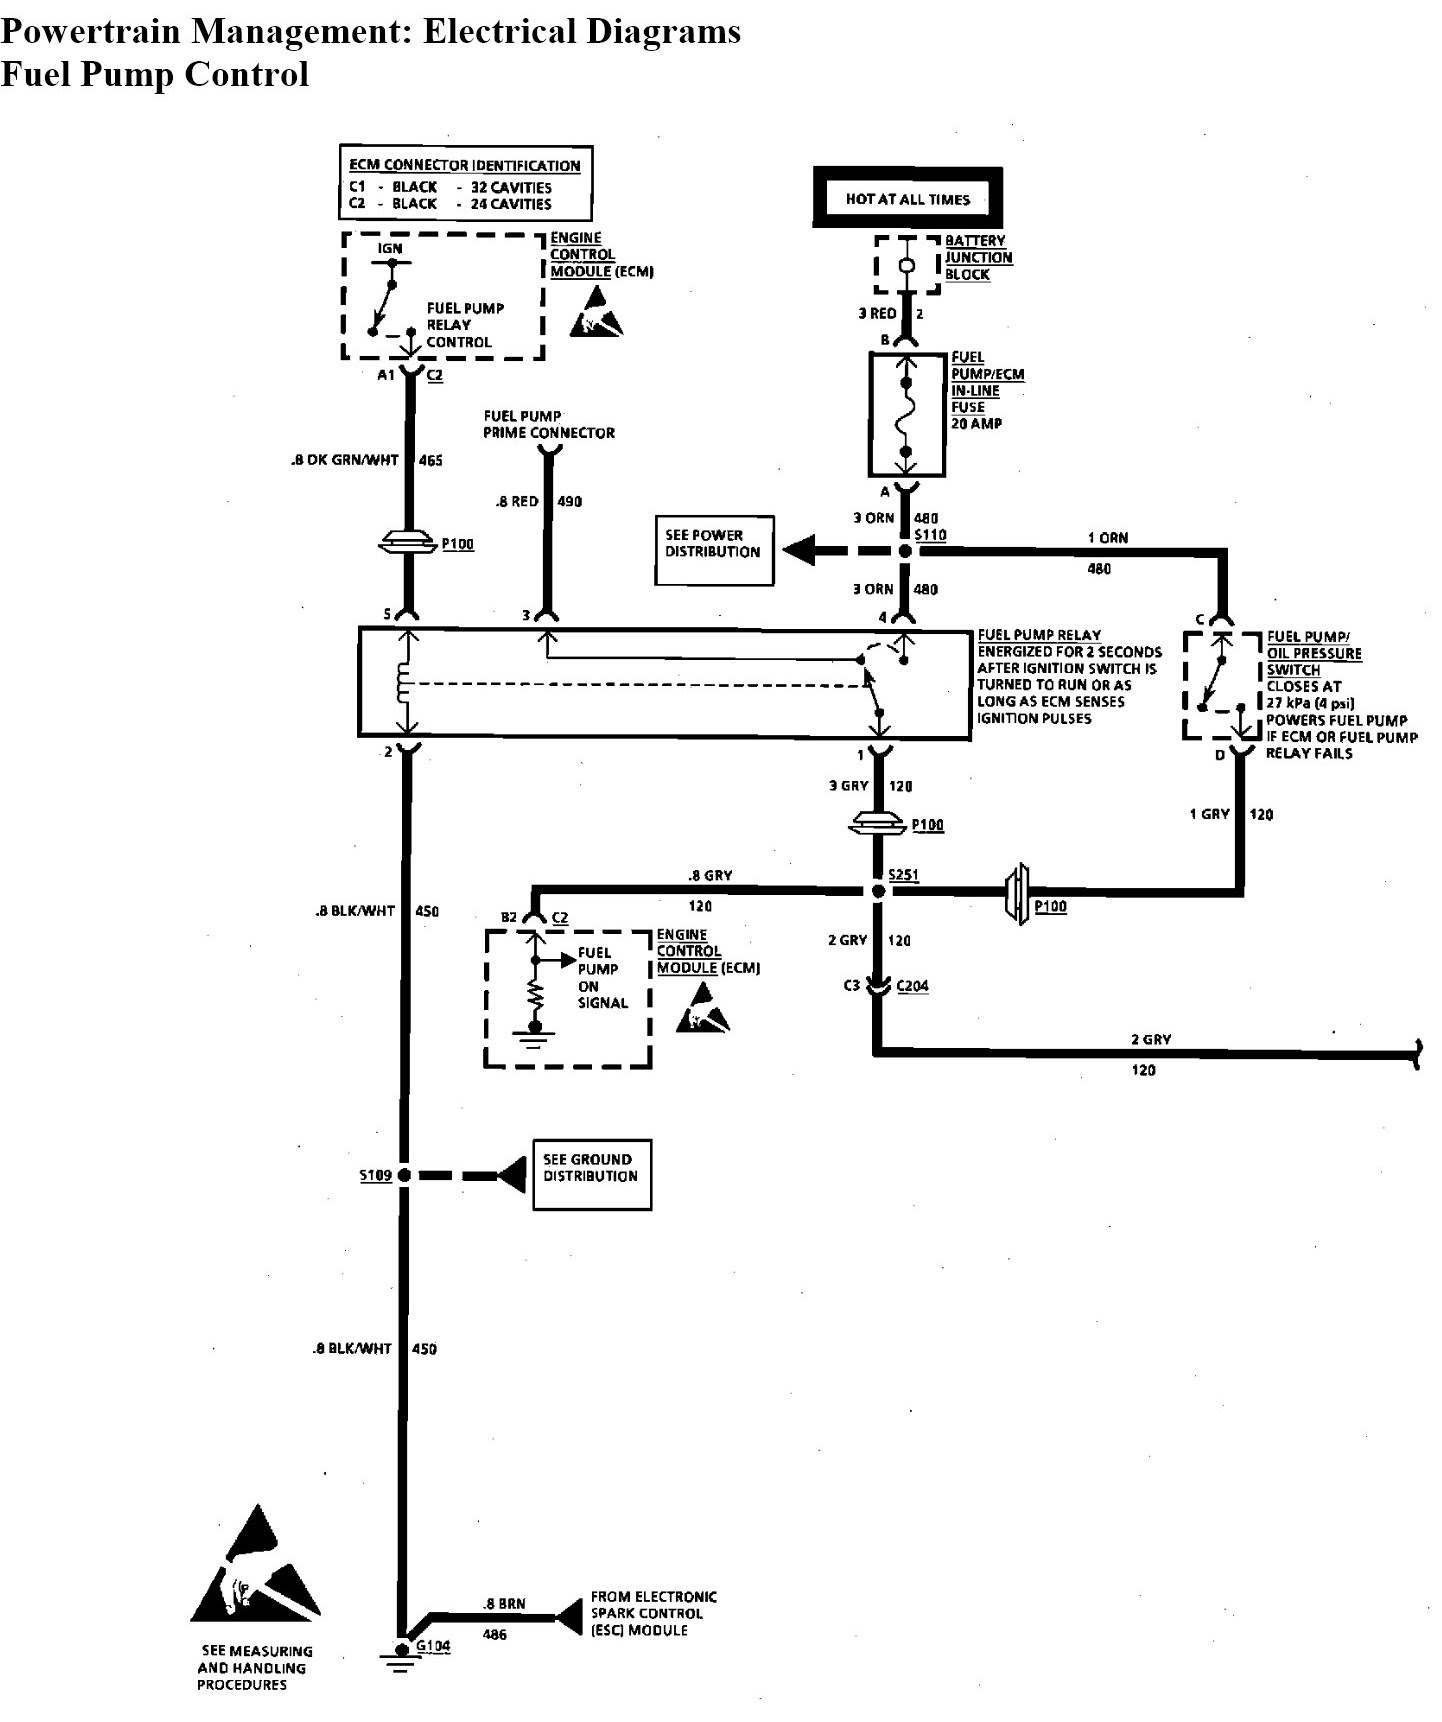 Diagram S14 Fuel Pump Wiring Diagram Full Version Hd Quality Wiring Diagram Diagramaliffg Nowroma It